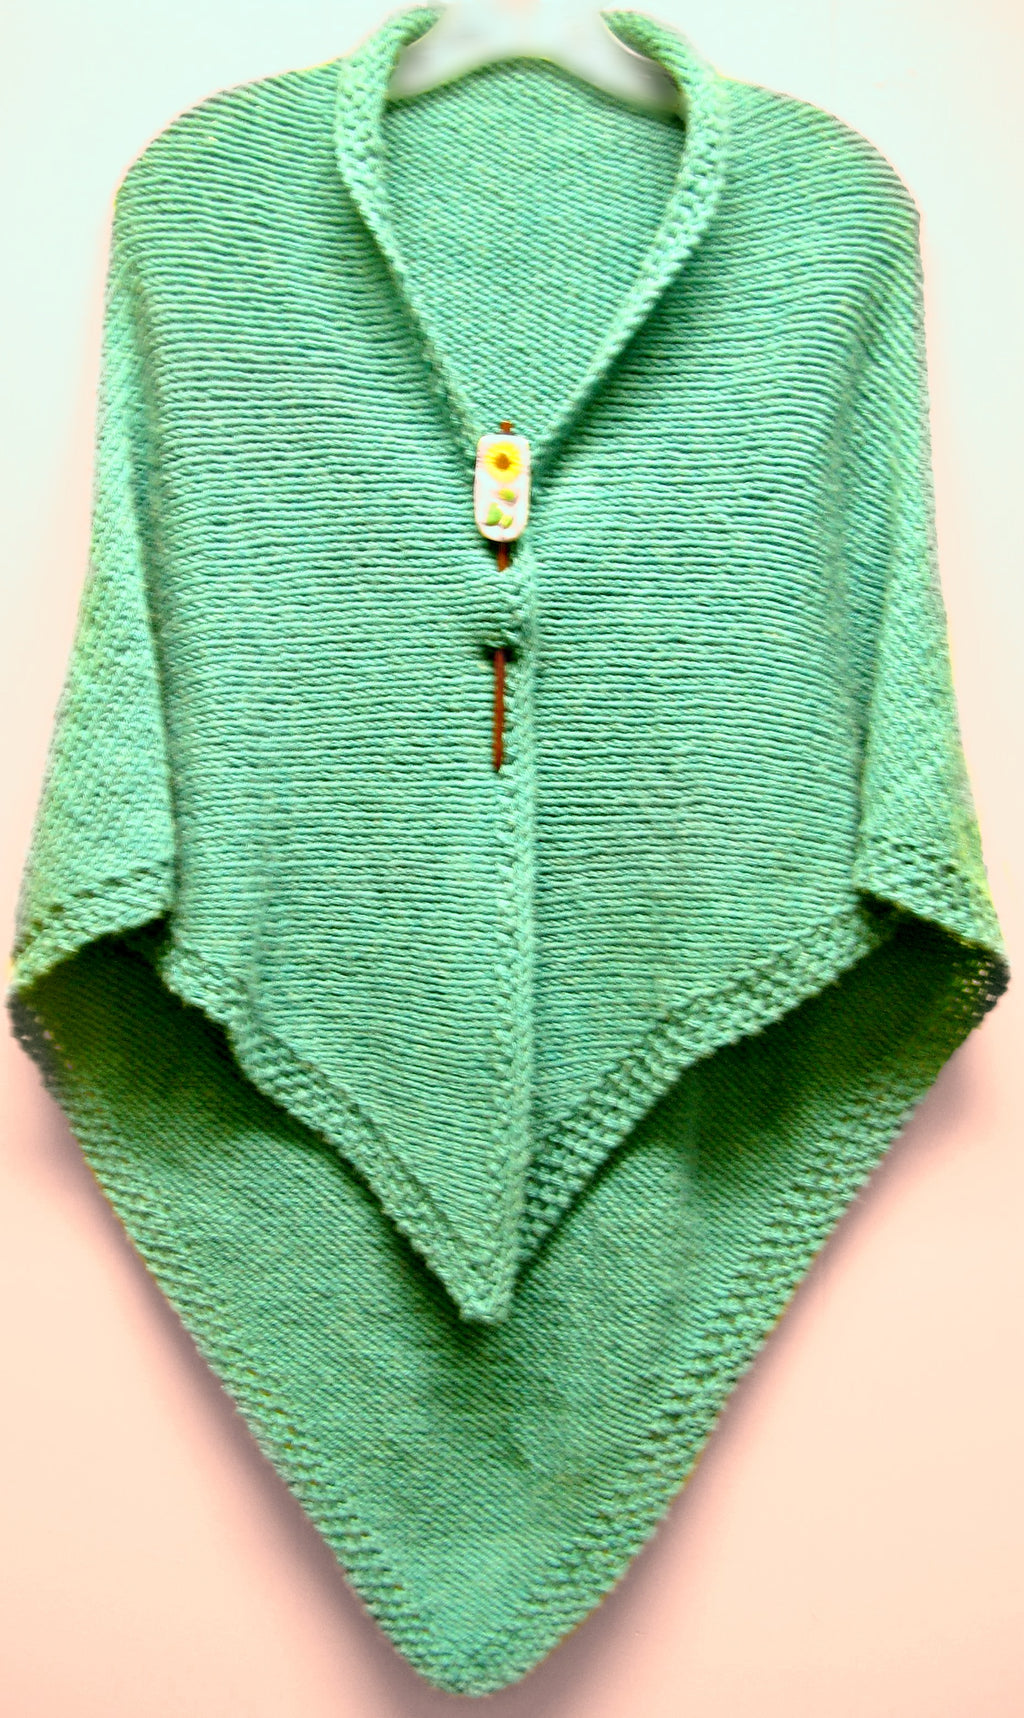 Moss Stitch Bordered Shawl  - Designed by Stephanie Boozer